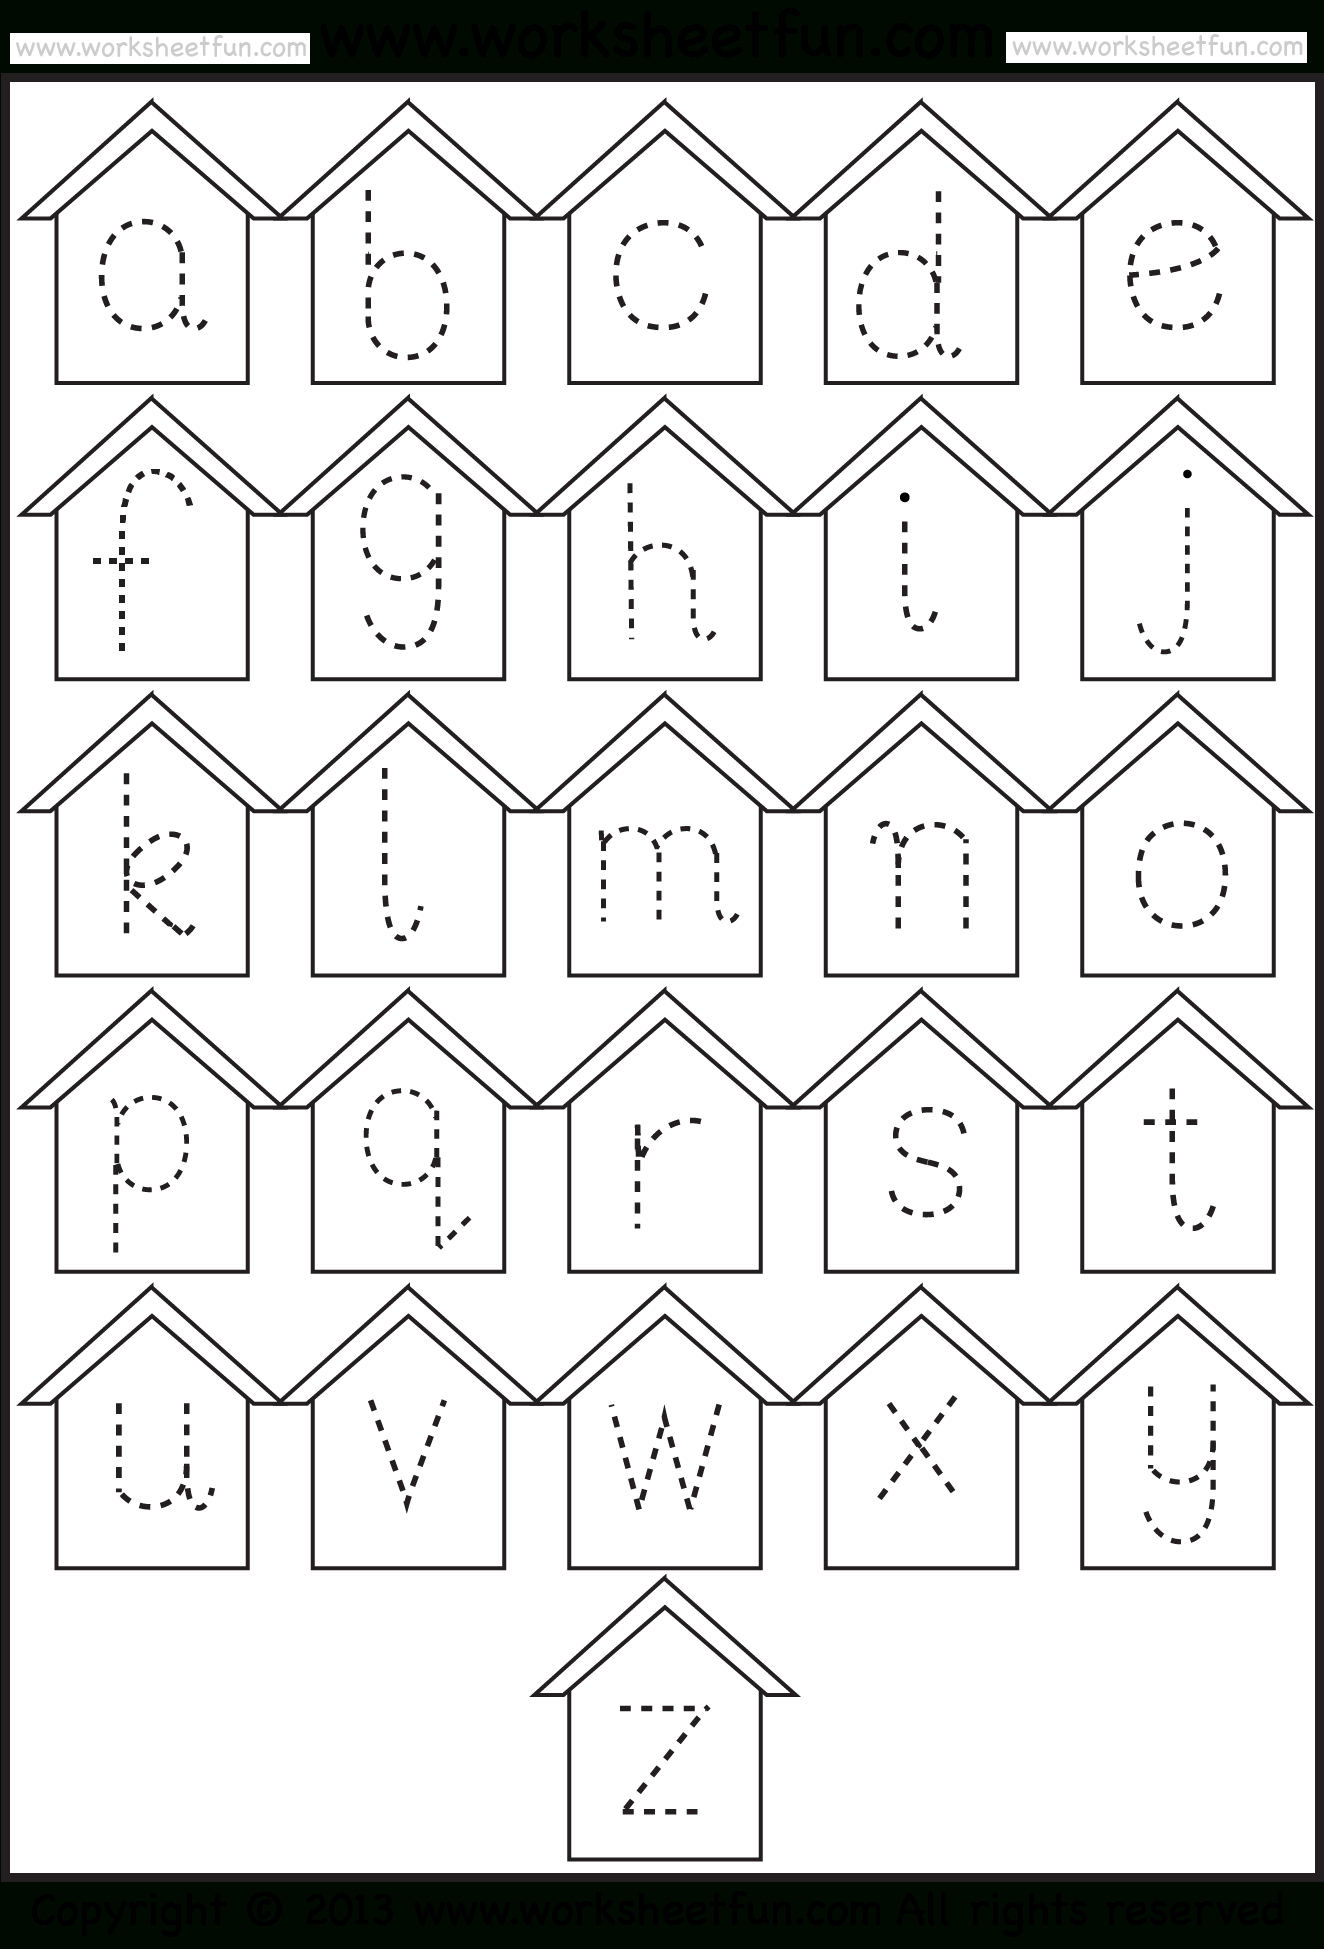 Tracing Small Letter A Worksheet